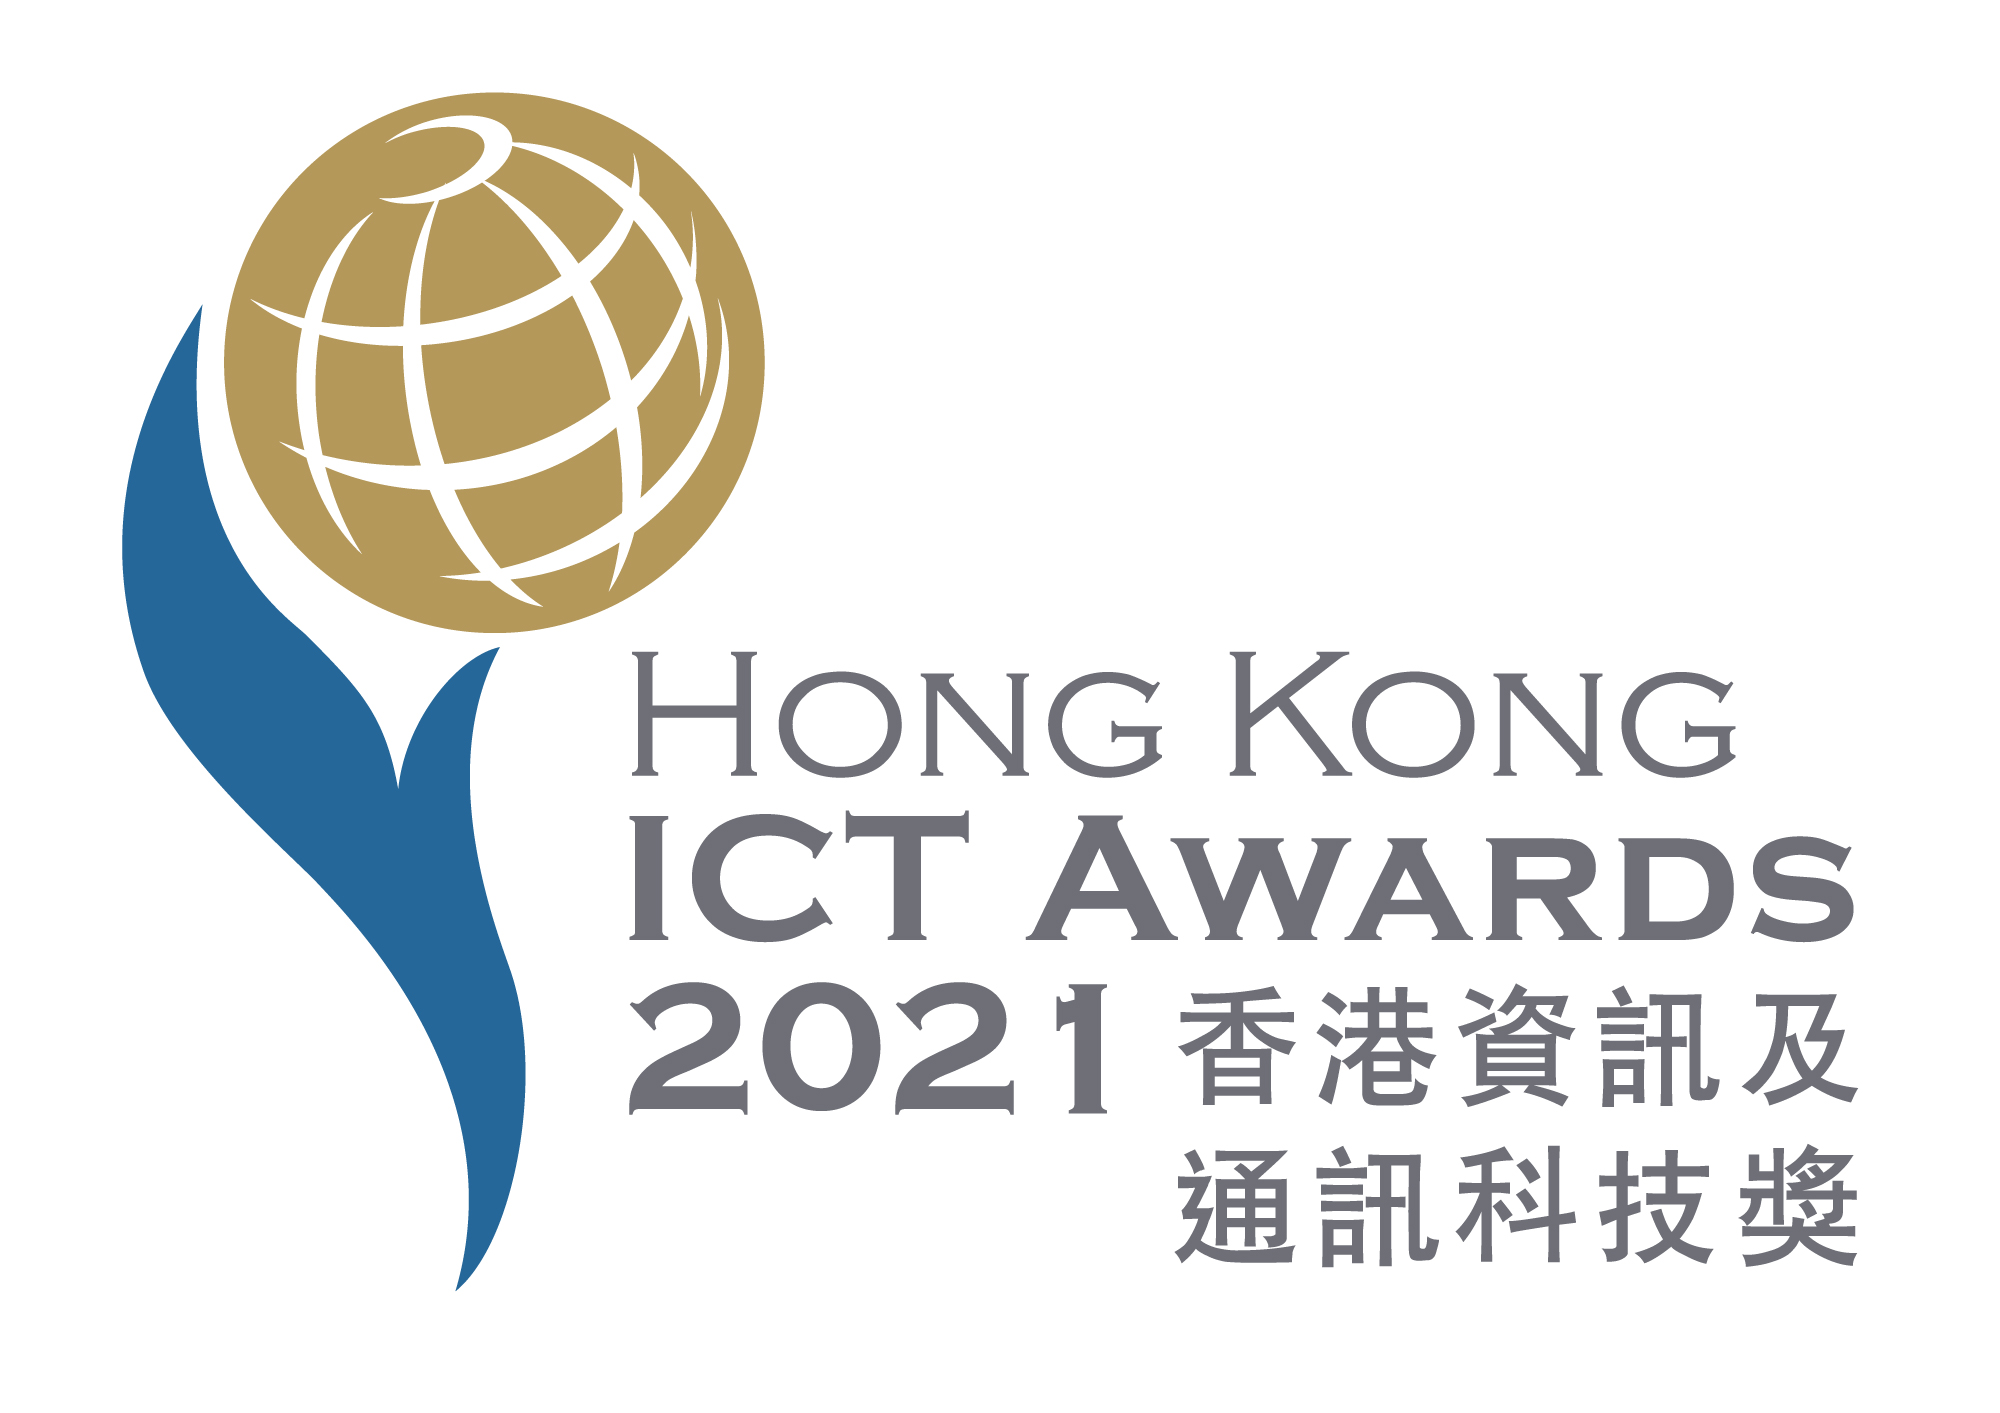 Hong Kong ICT Awards 2021